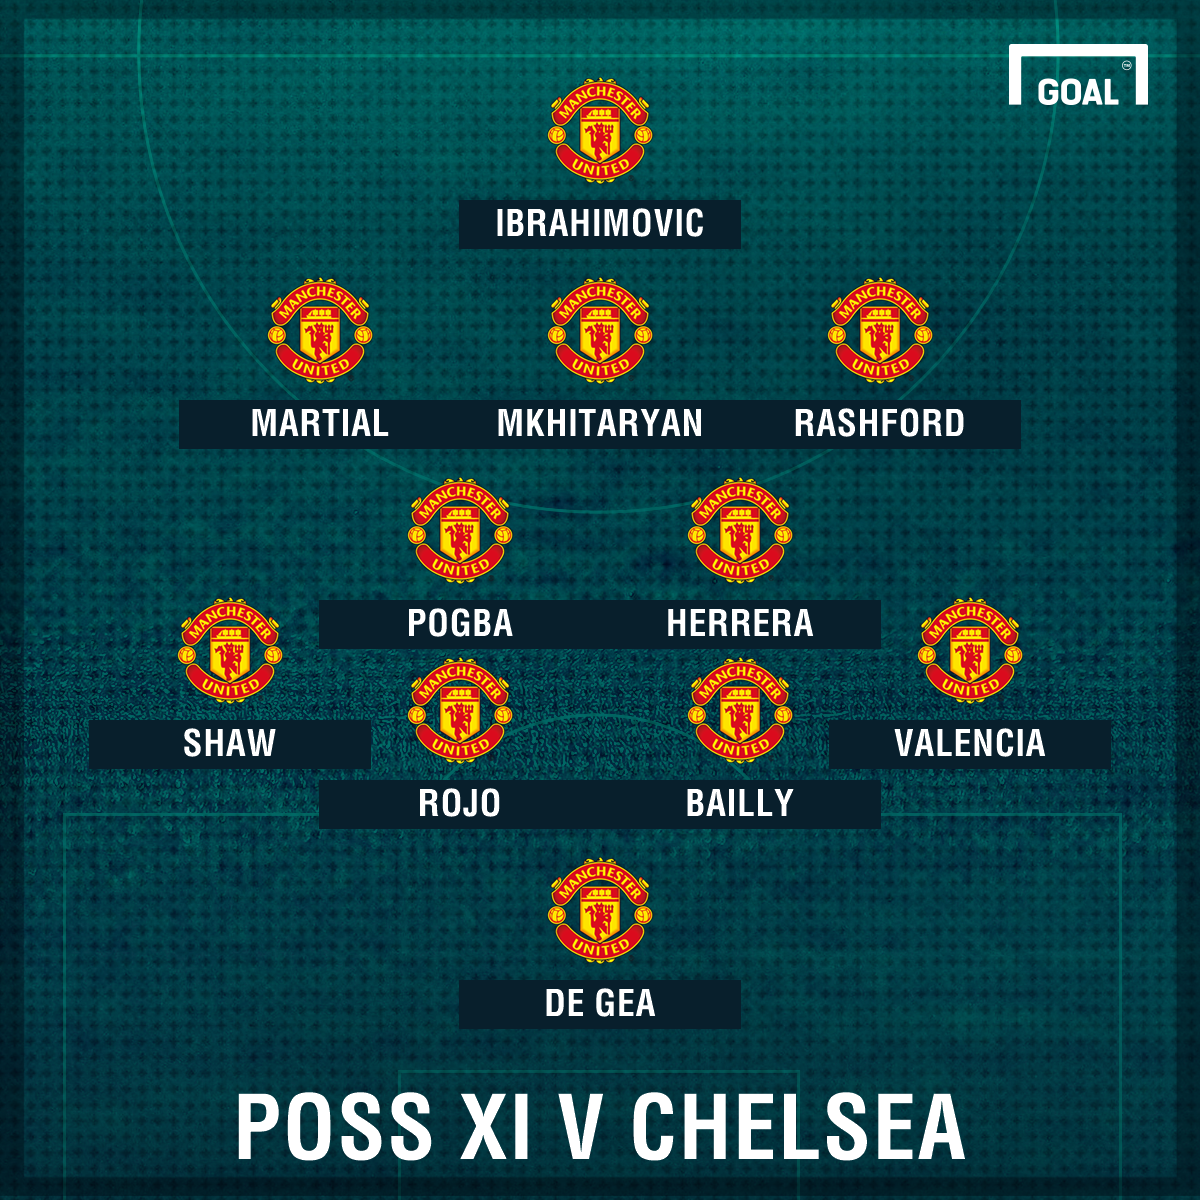 Man utd line up against chelsea